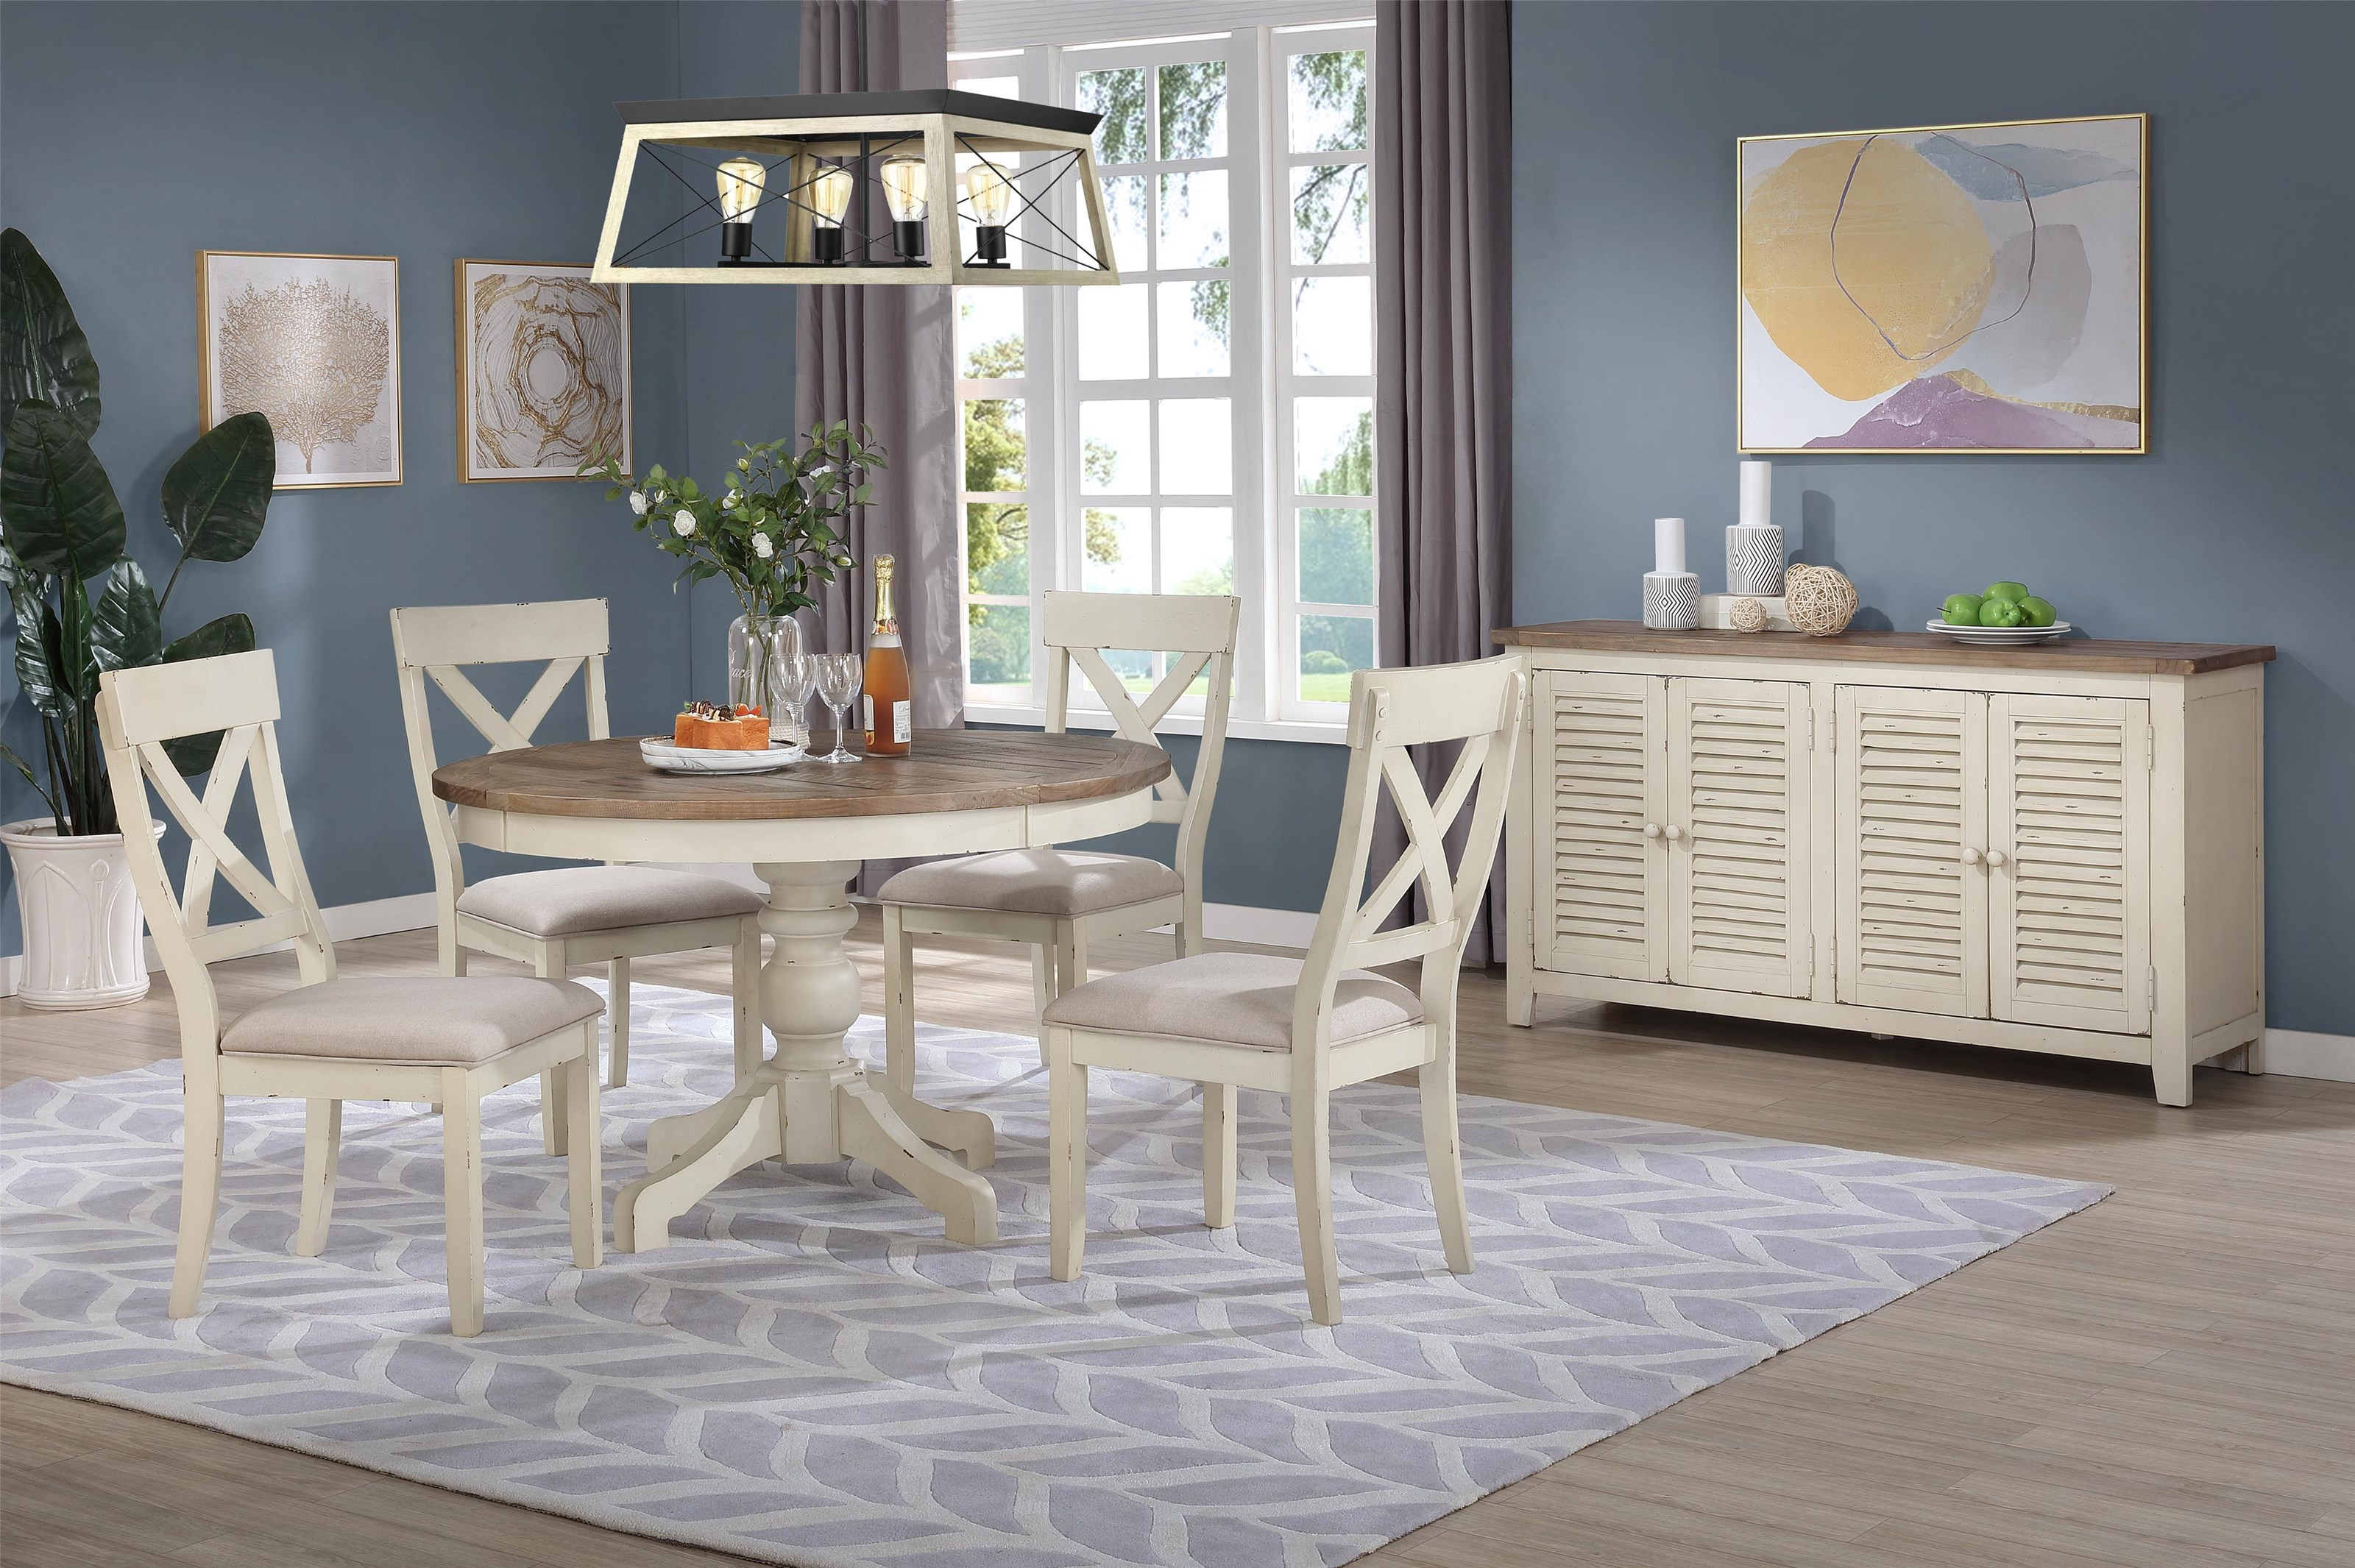 C1855Dwht-brn Round Table x 4 chairs by Lifestyle at Furniture Fair - North Carolina